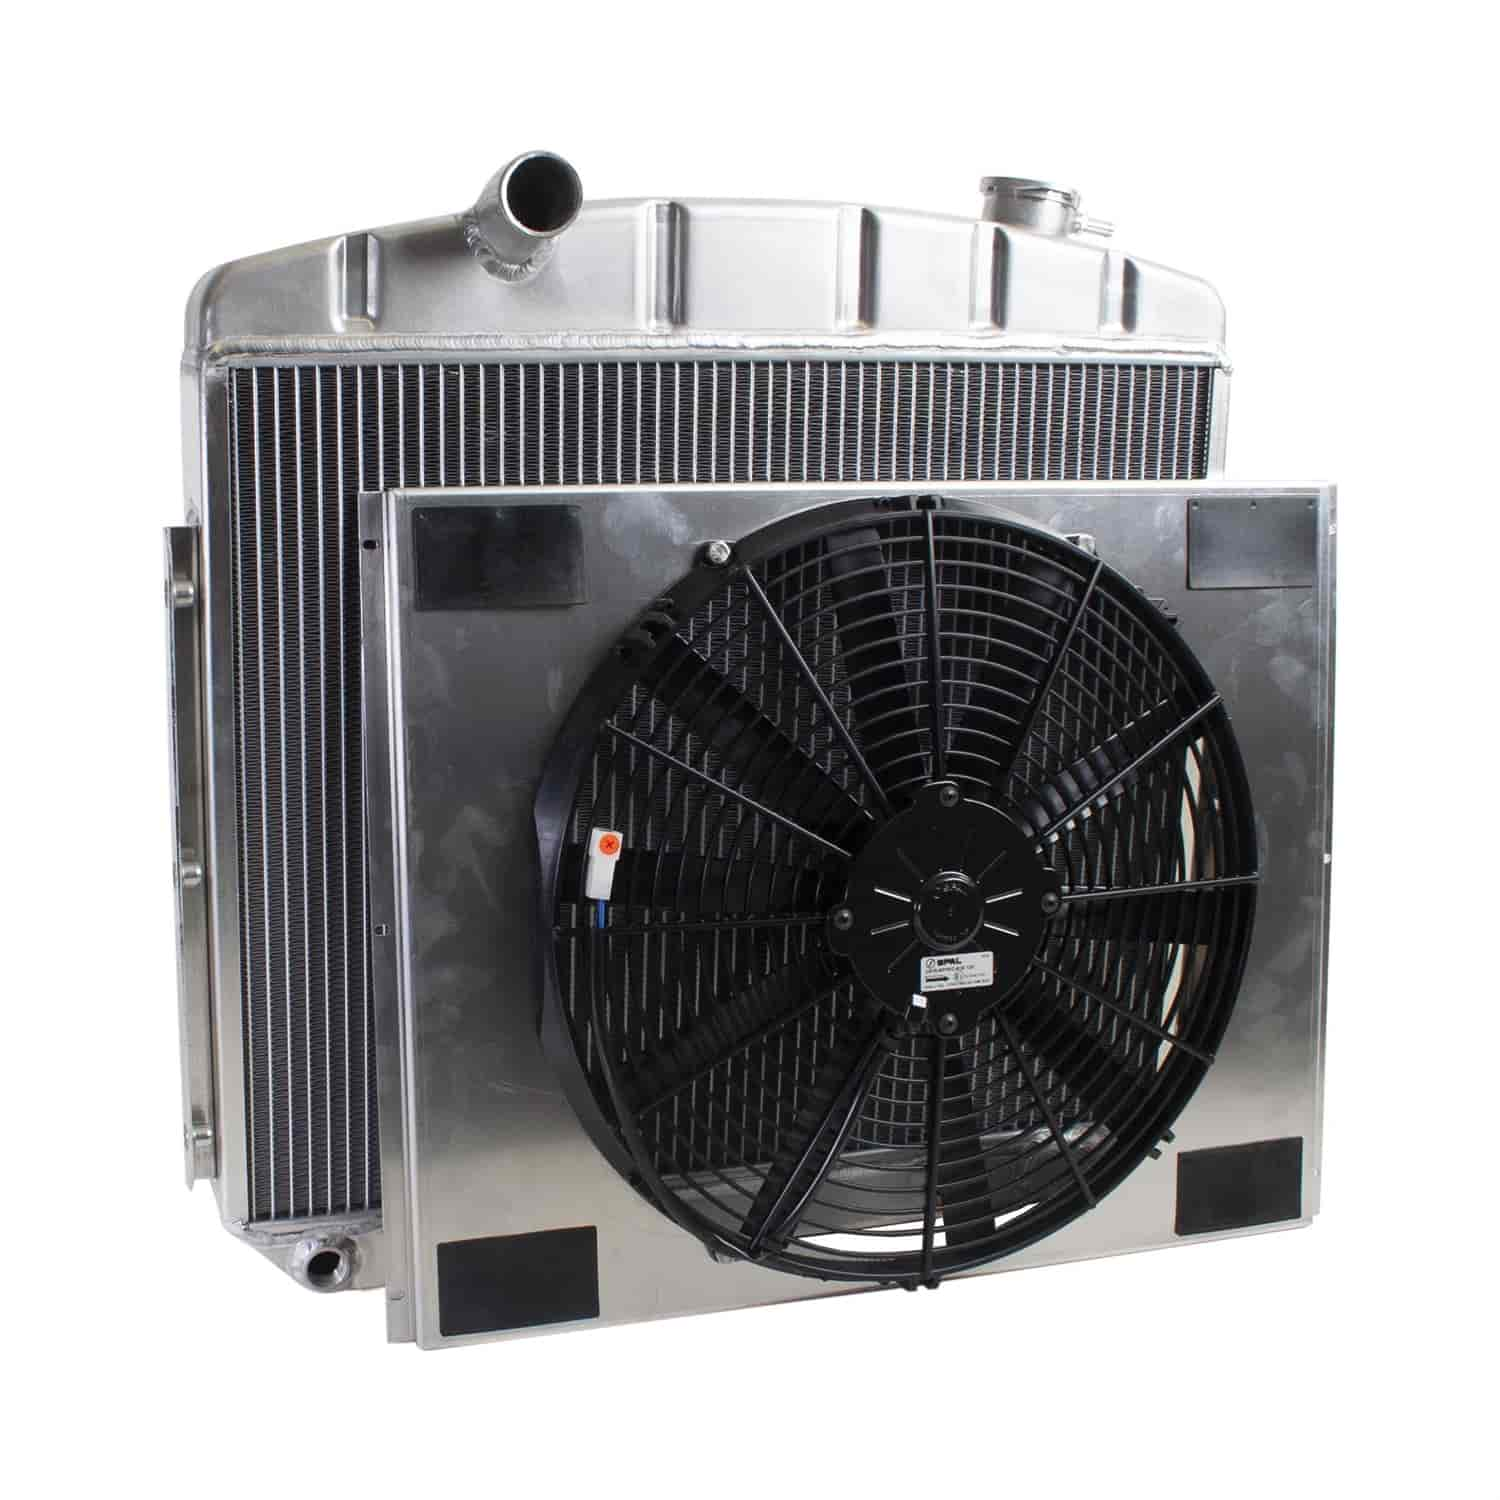 Griffin Radiators CU-00065